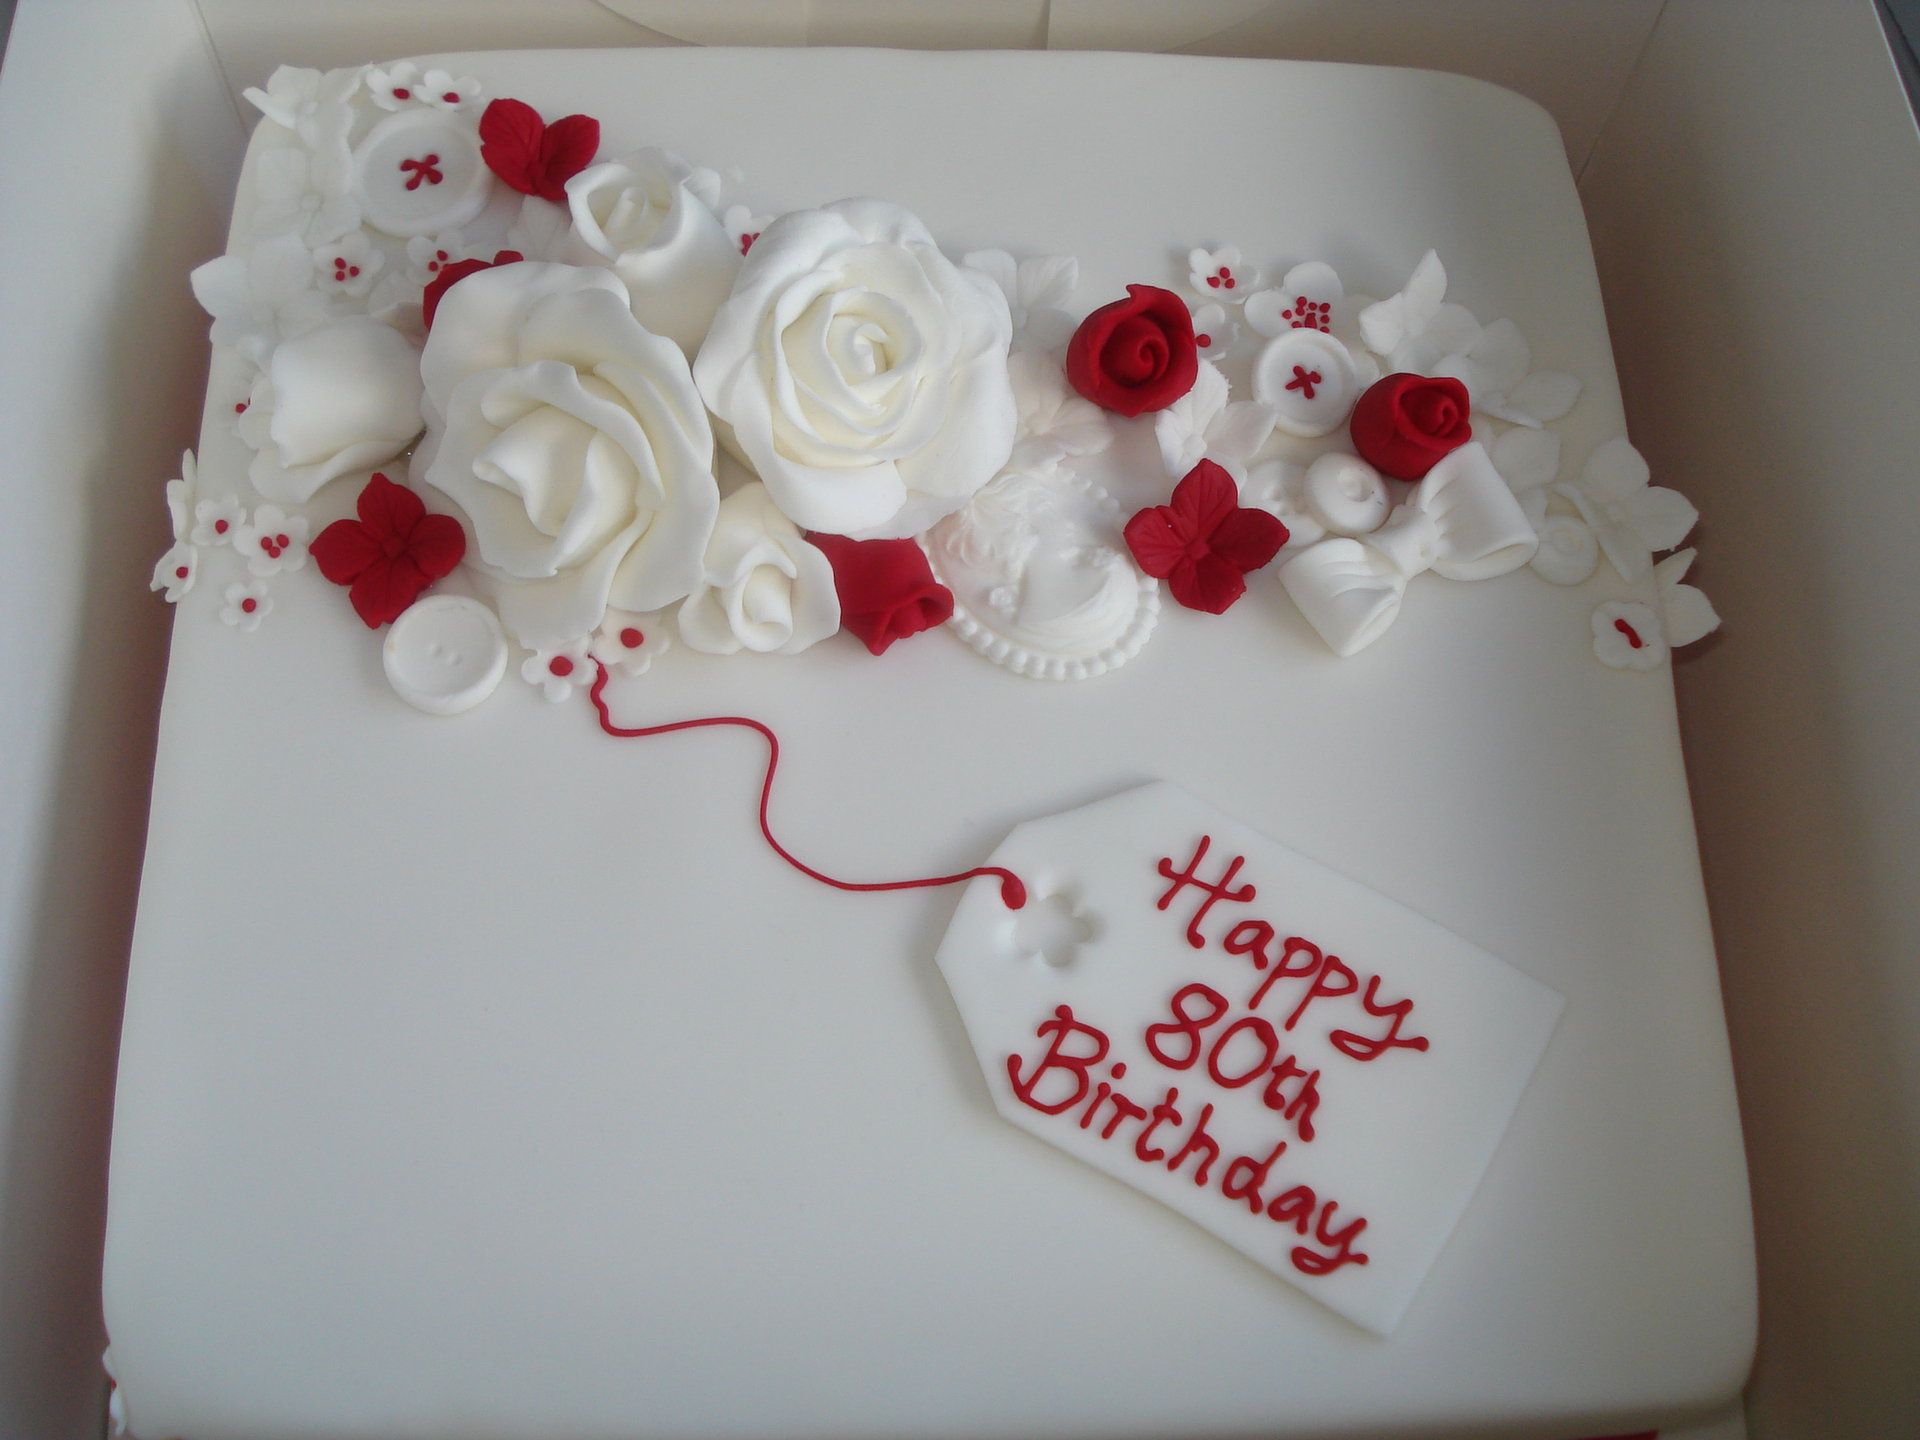 Happy 80th Birthday Cake Cake ideas Pinterest 80th birthday